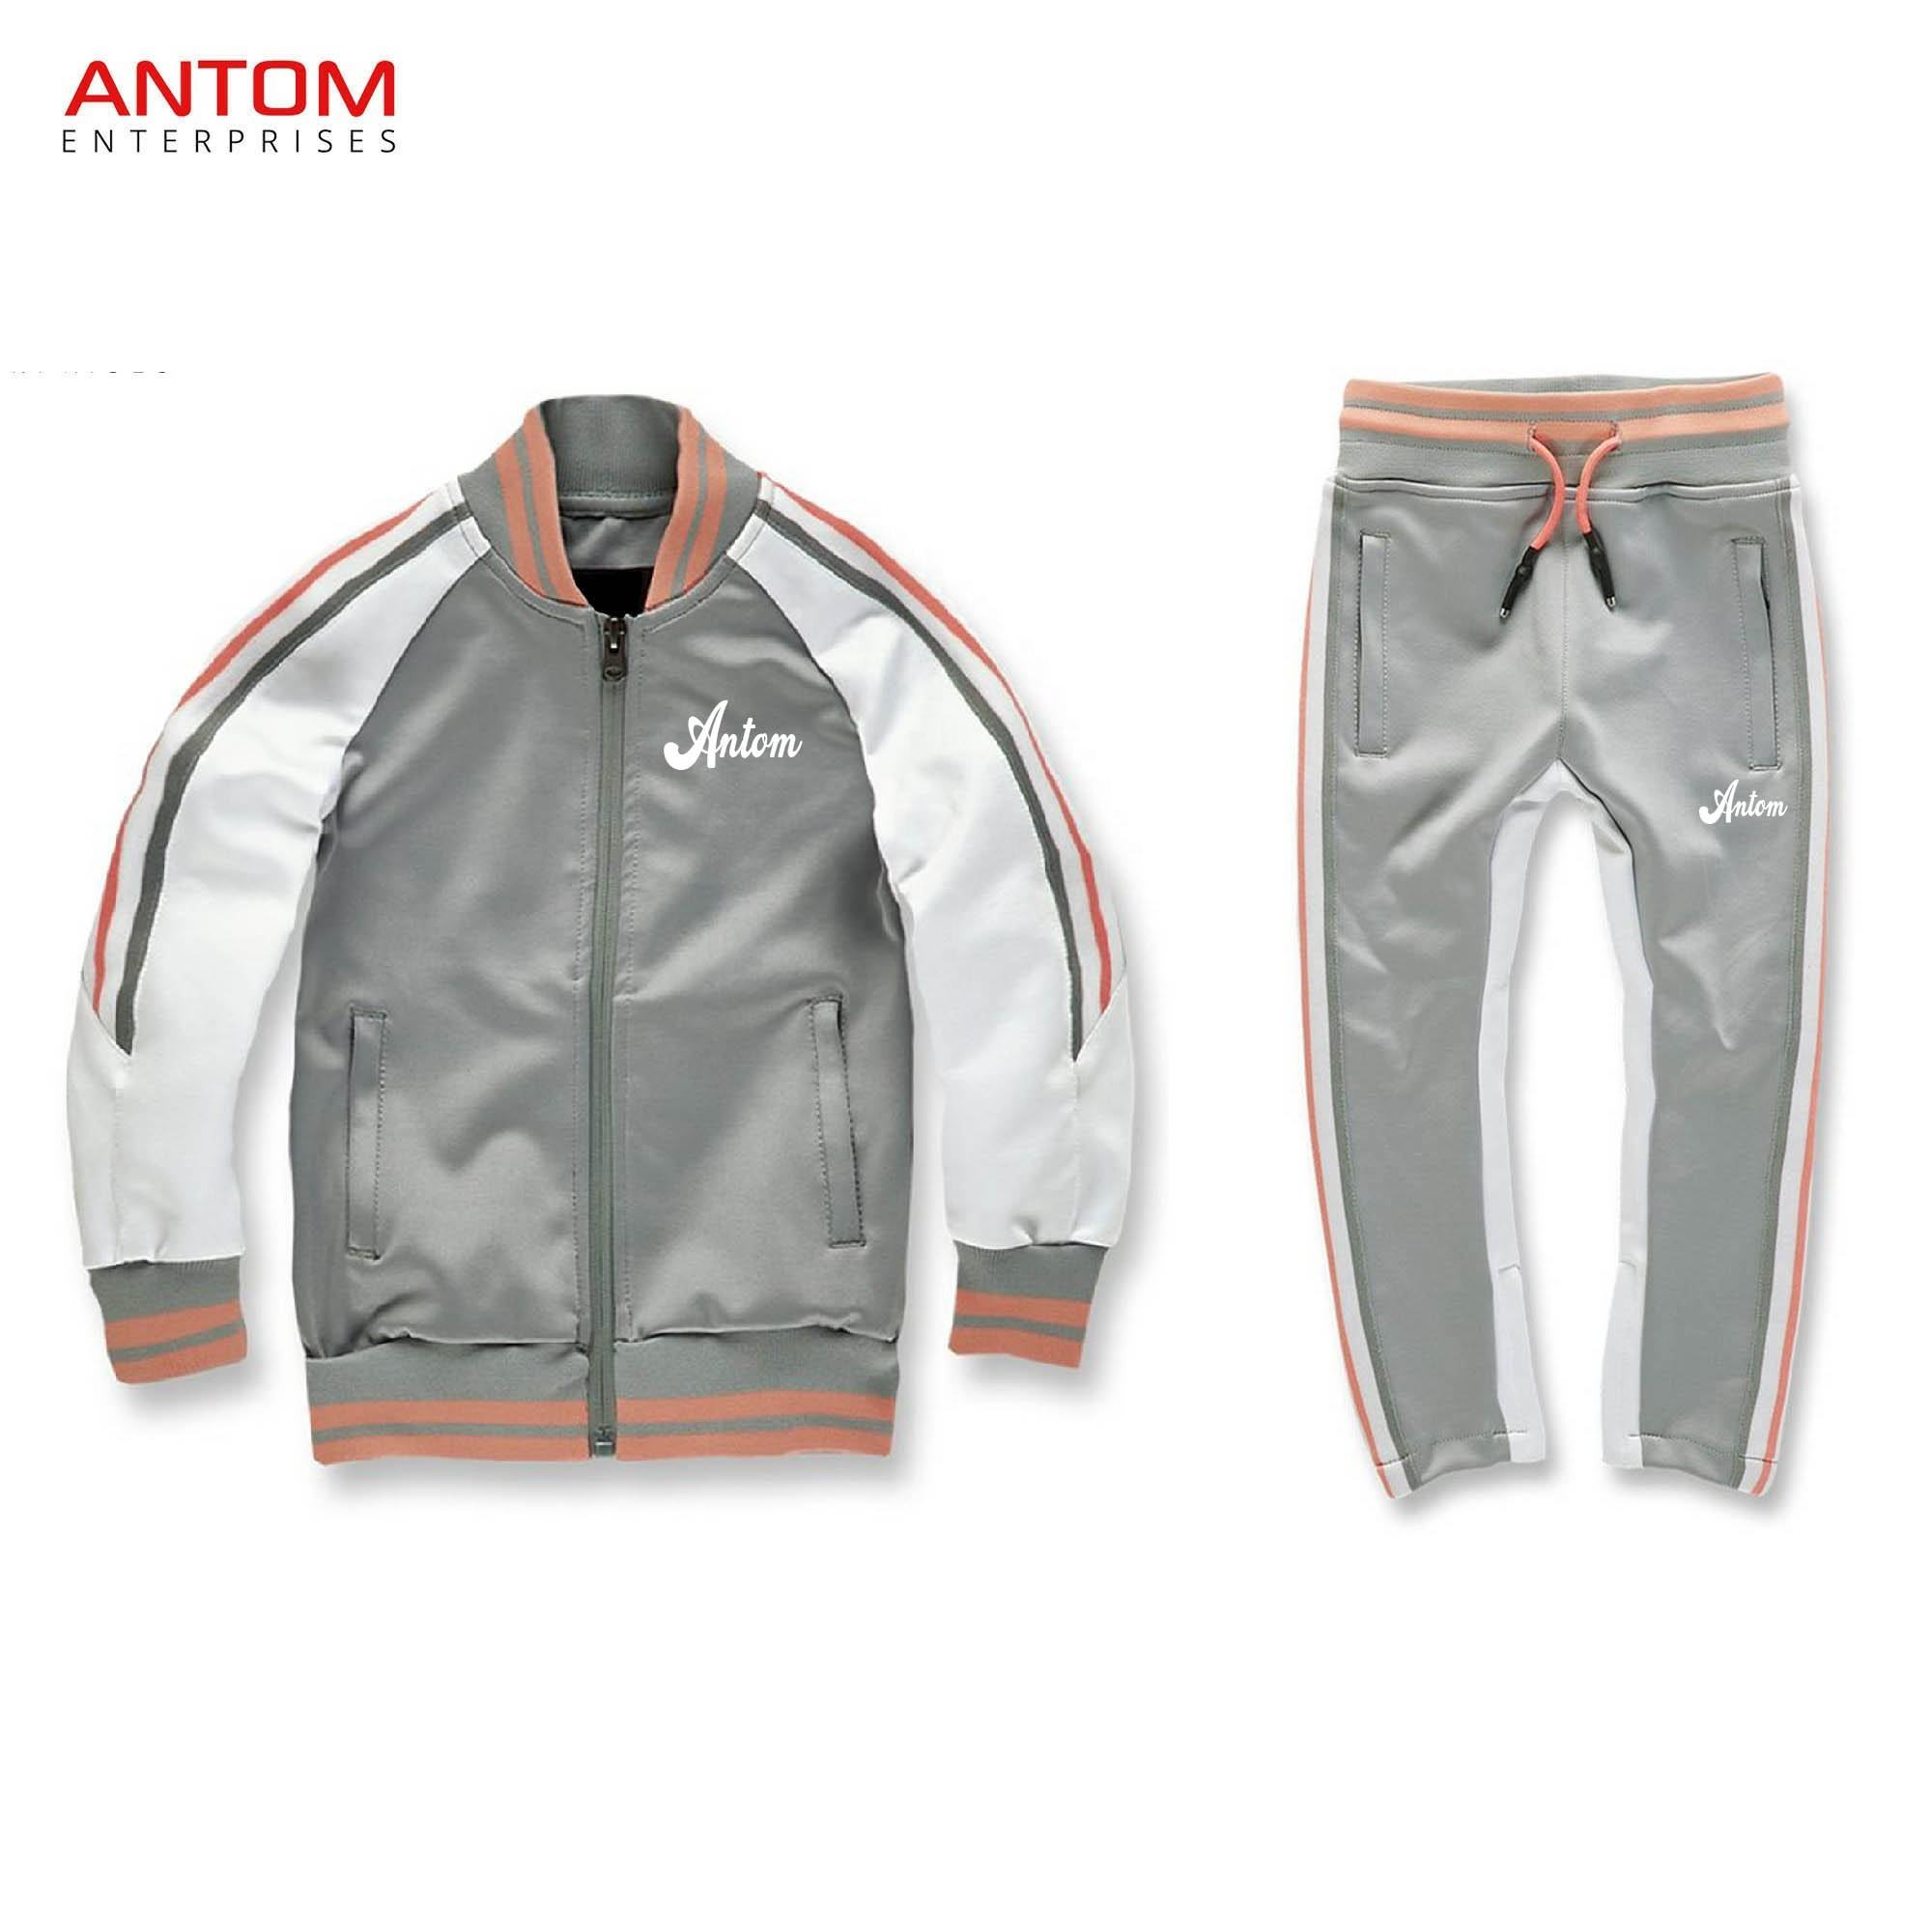 High Quality 100% Cotton Fleece Tracksuits / Custom Sublimated Tracksuit Made by Antom Enterprises